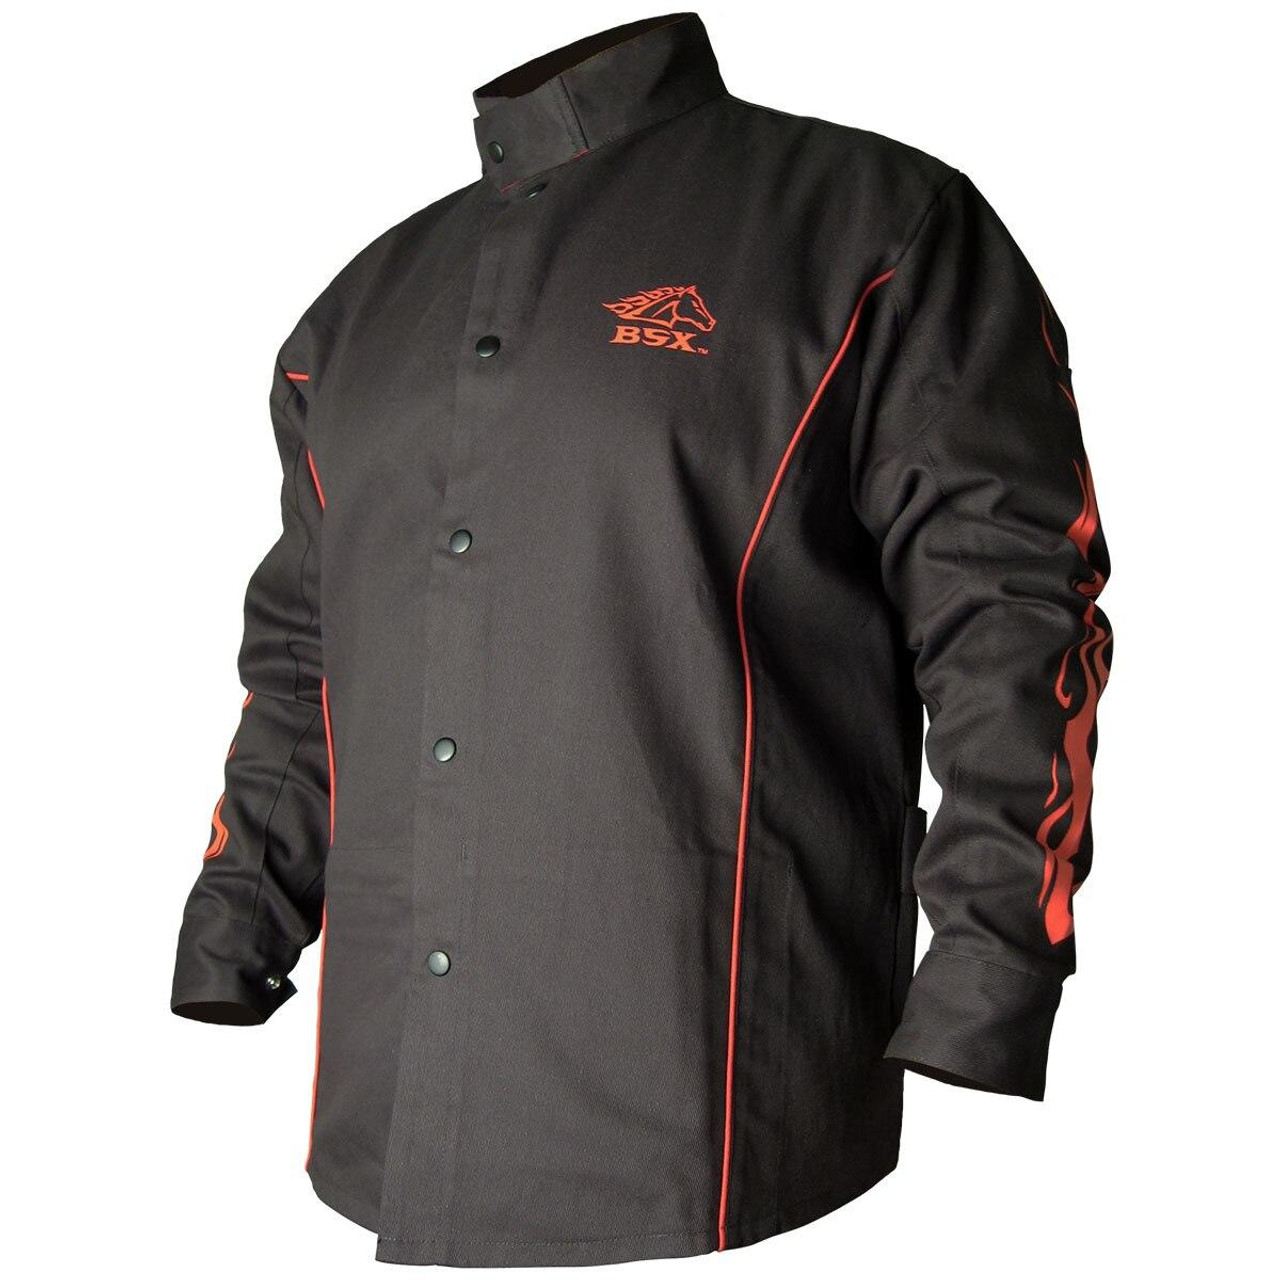 Black Stallion BSX Contoured FR Cotton Welding Jacket, Black with Red Flames